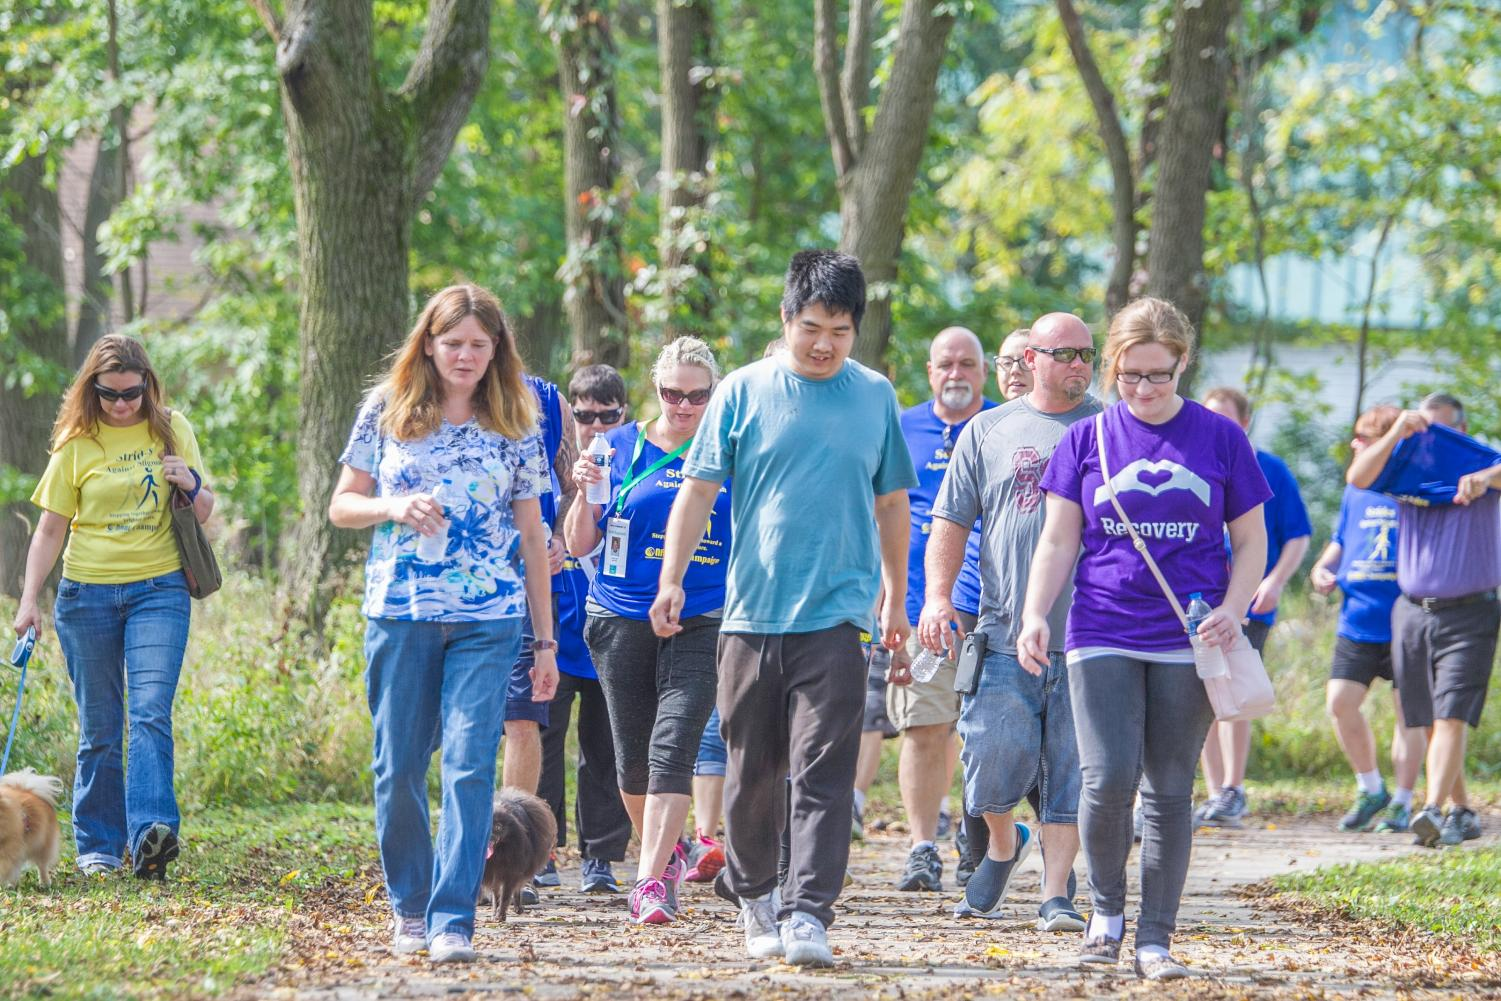 Participants in the NAMI walk take their first steps along the two-mile course at Meadowbrook Park on Sunday, Oct. 7. Local chapters of NAMI worked together to  organize the event, which they hope to continue to hold annually.